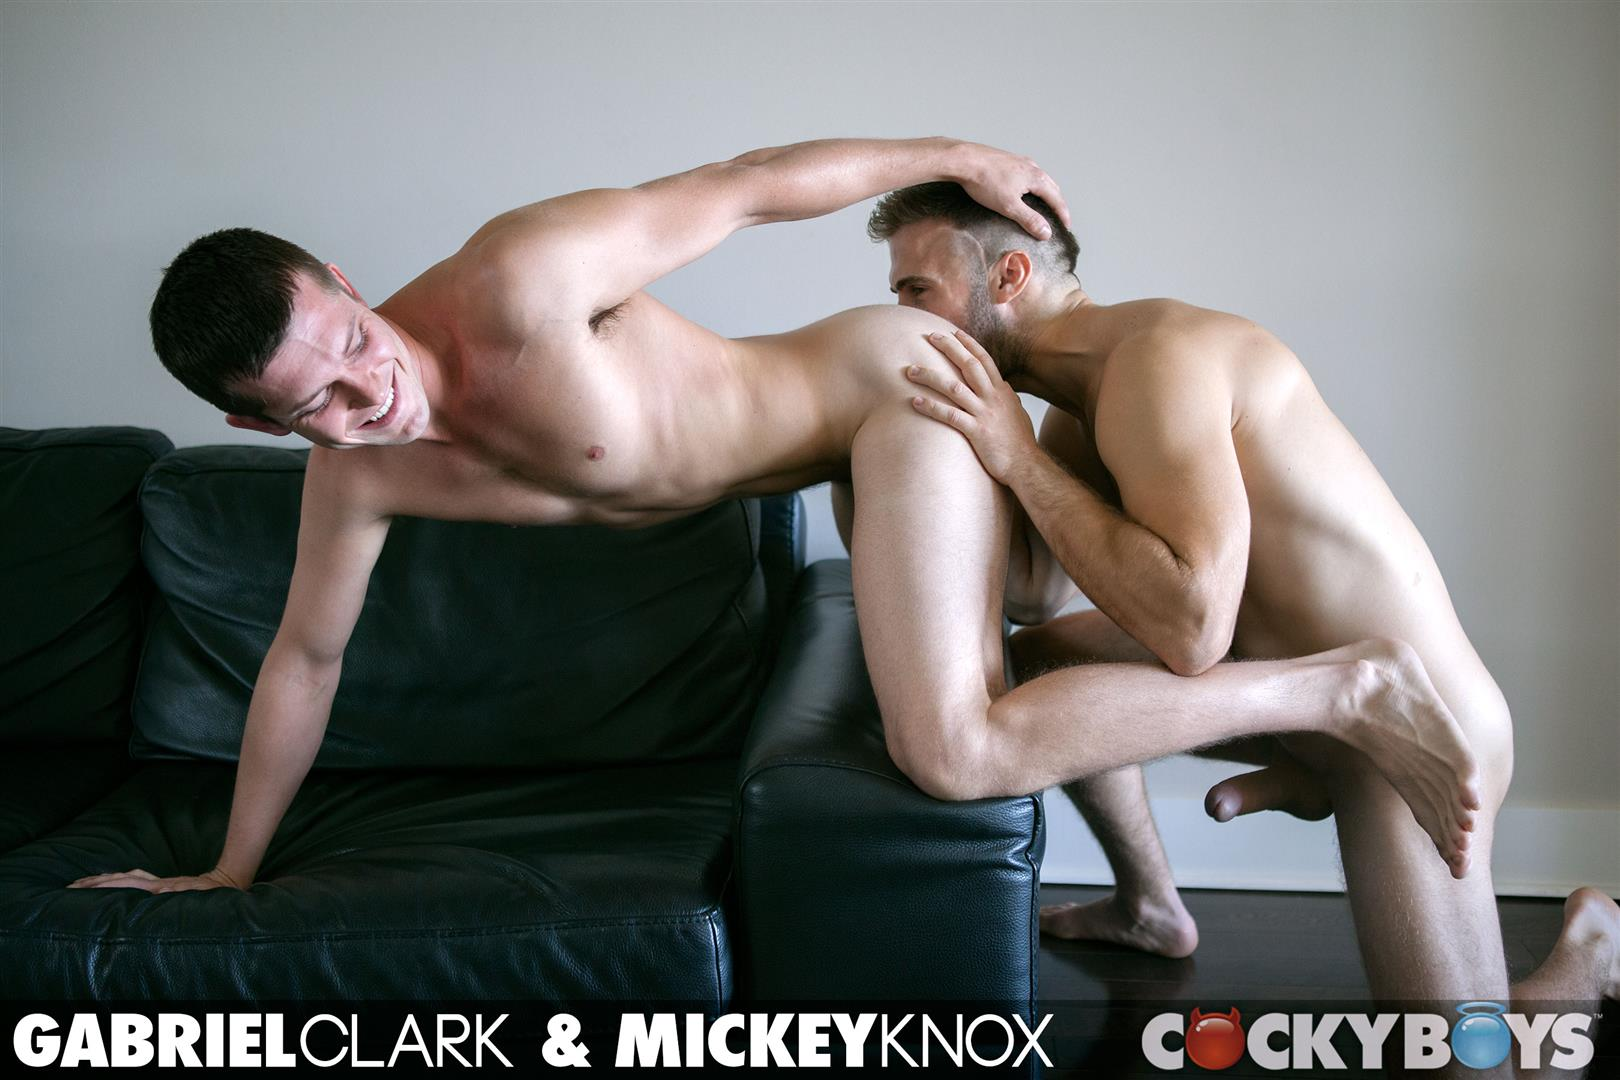 Cockyboys Mickey Knox and Gabriel Clark American Boys Thick Cocks Fucking Amateur Gay Porn 14 All American Boys Mickey Knox and Gabriel Clark Share A Fuck